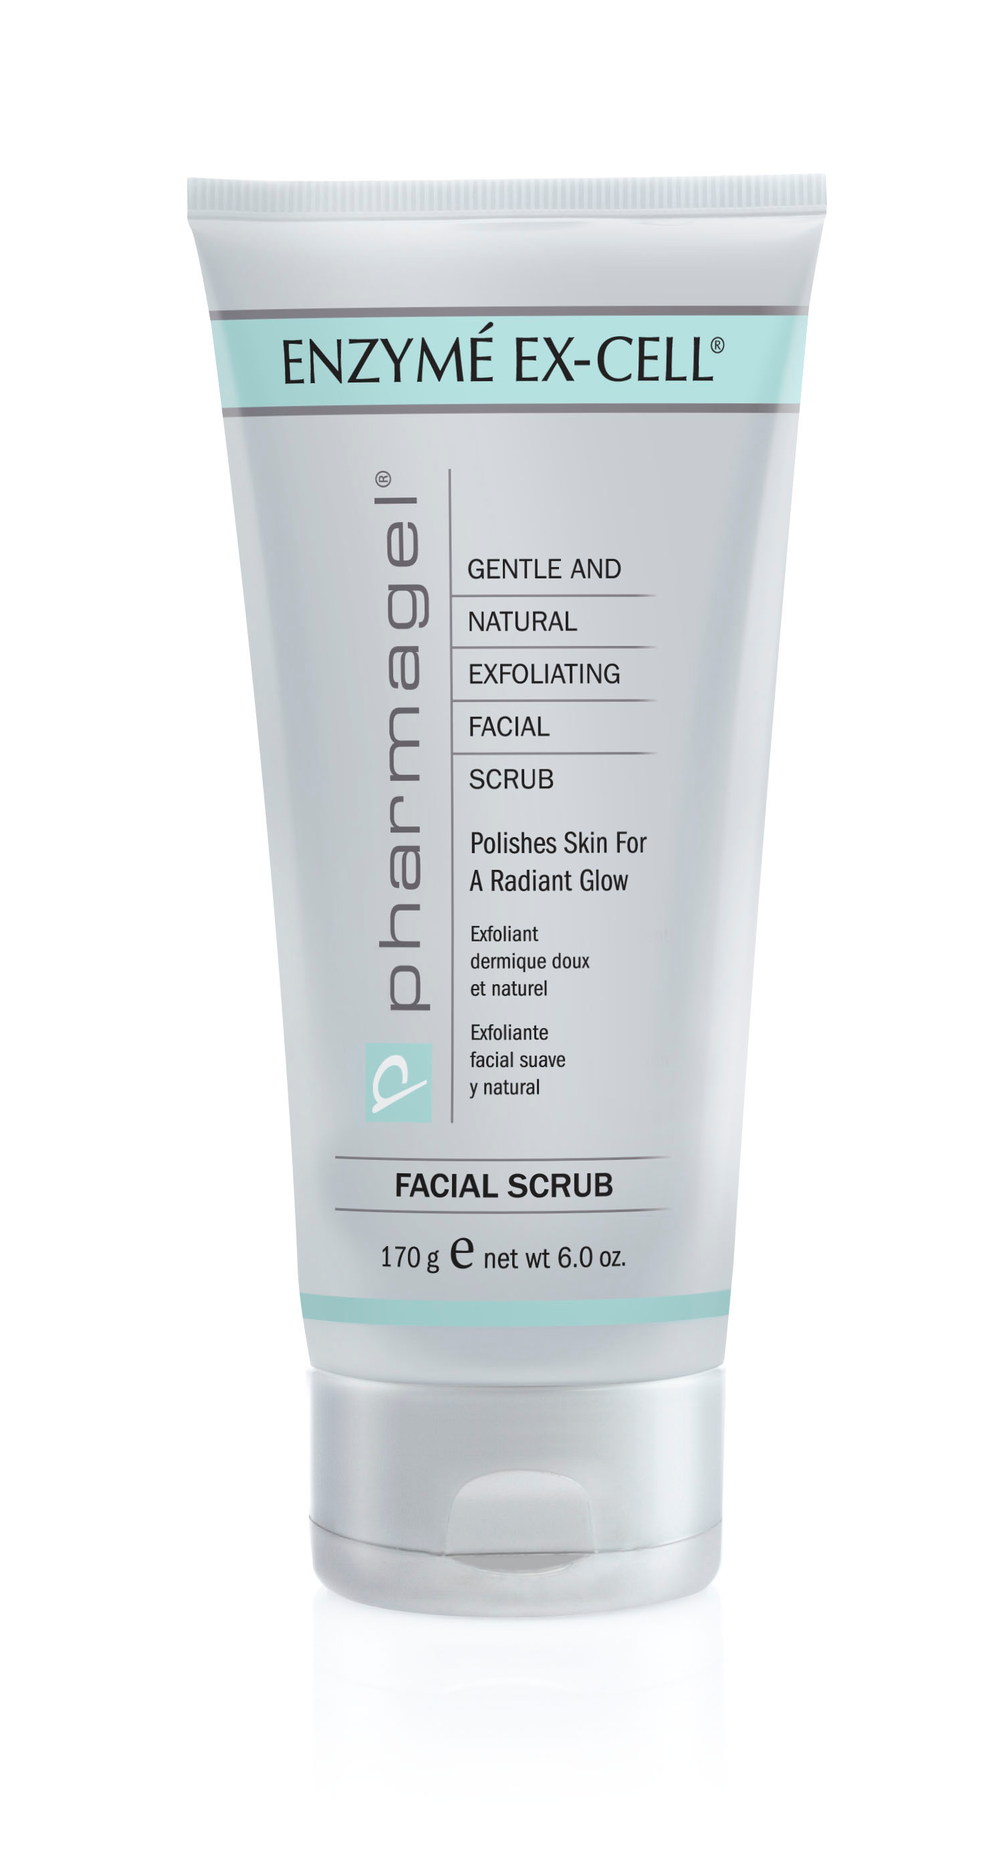 ENZYMÉ EXCELL  An extremely gentle exfoliating dermal scrub with all botanical polishing grains. It sloughs off dry, dulling skin cells and leaves skin with a finer, smoother texture. ENZYMÉ EX-CELL contains the anti-aging enzymes of the papaya plant. These enzymes encourage natural exfoliation and increase cell renewal. Skin has refined pores and improved color and tone. Men may use ENZYMÉ EX-CELL before shaving for a smoother, closer shave.